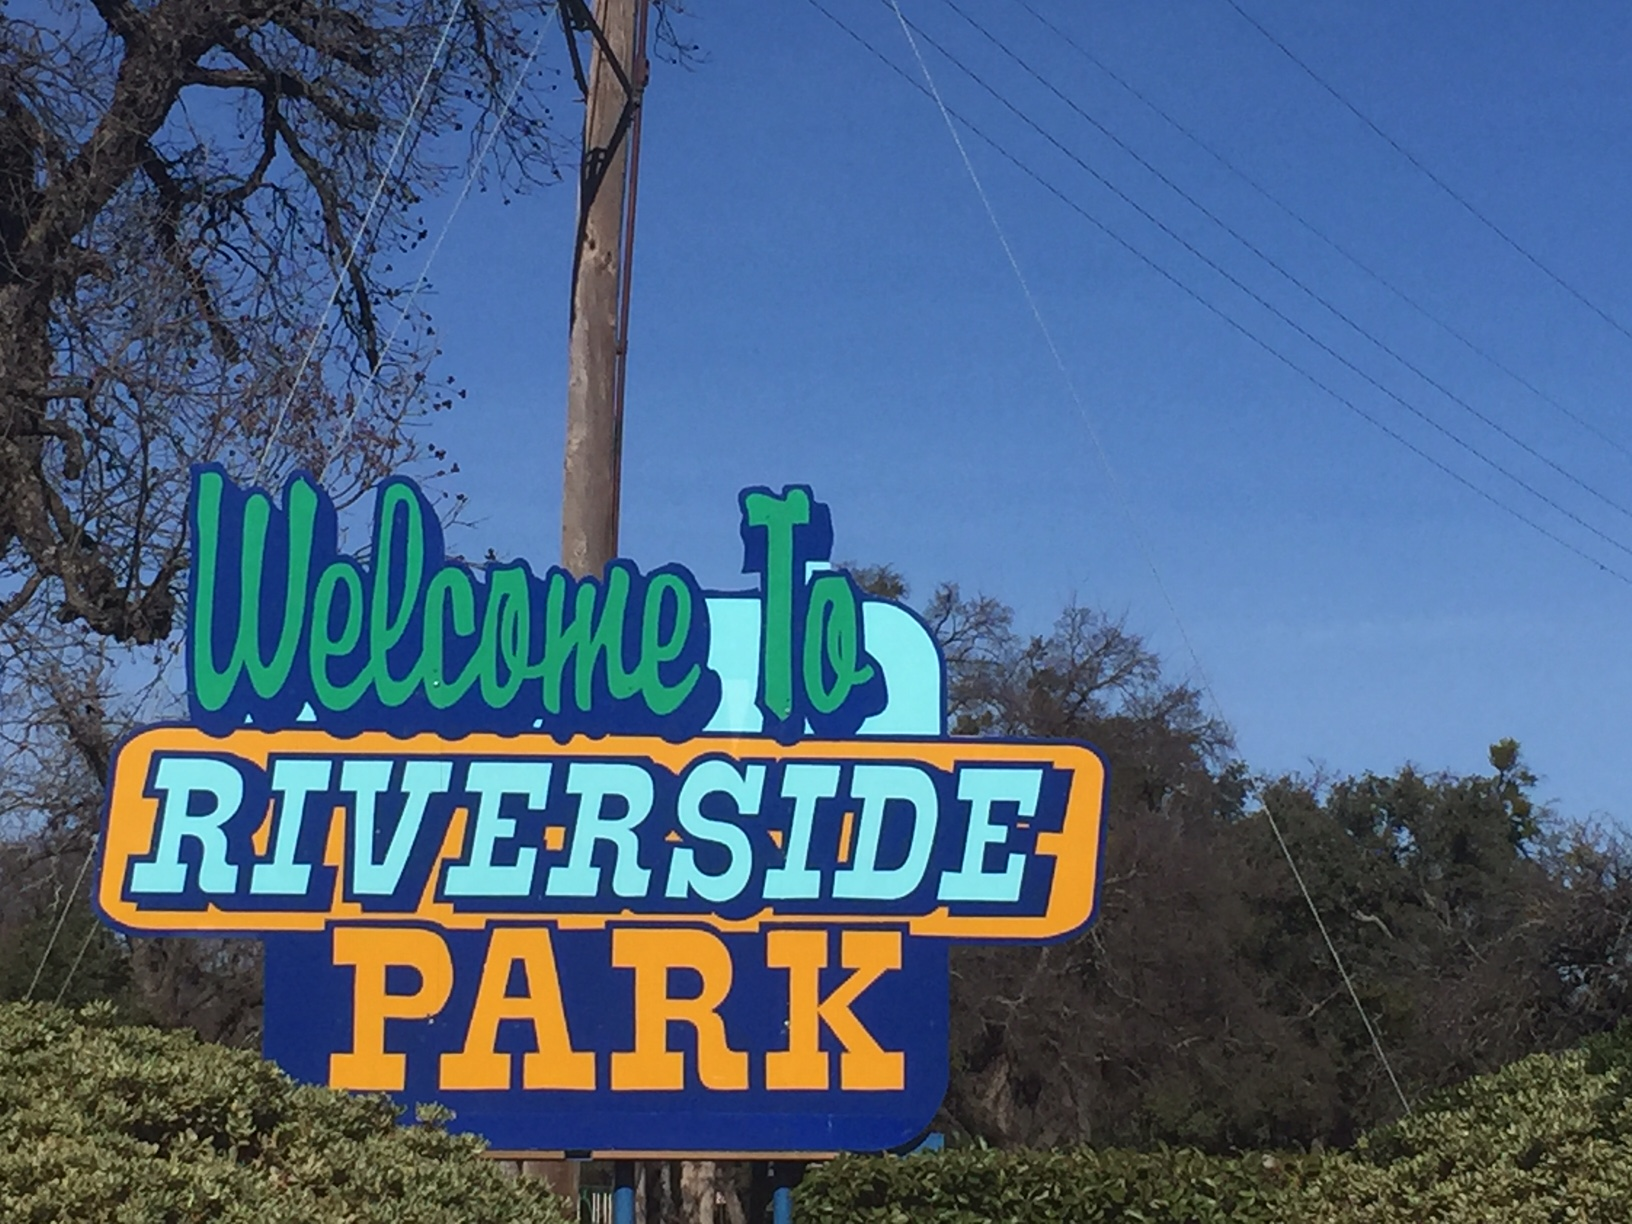 The sign for Riverside Park